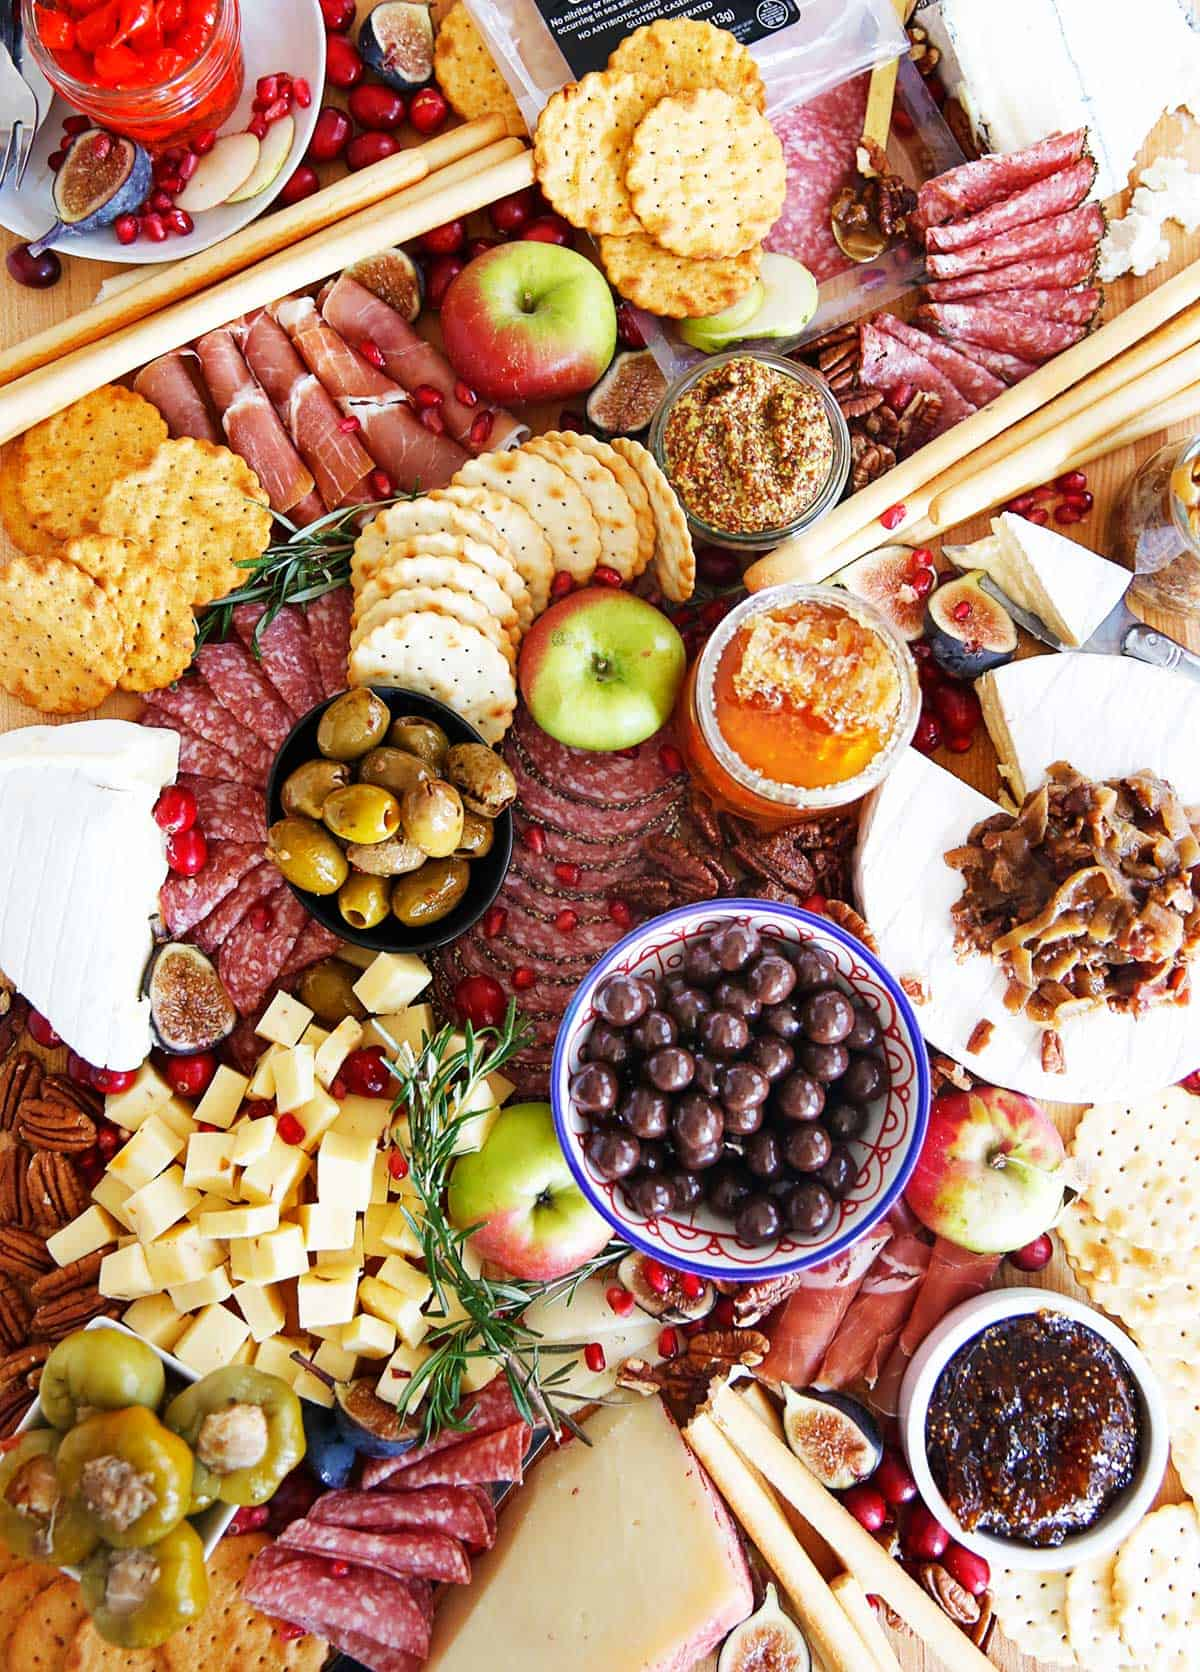 Charcuterie Board filled with meats, cheese and spreads.